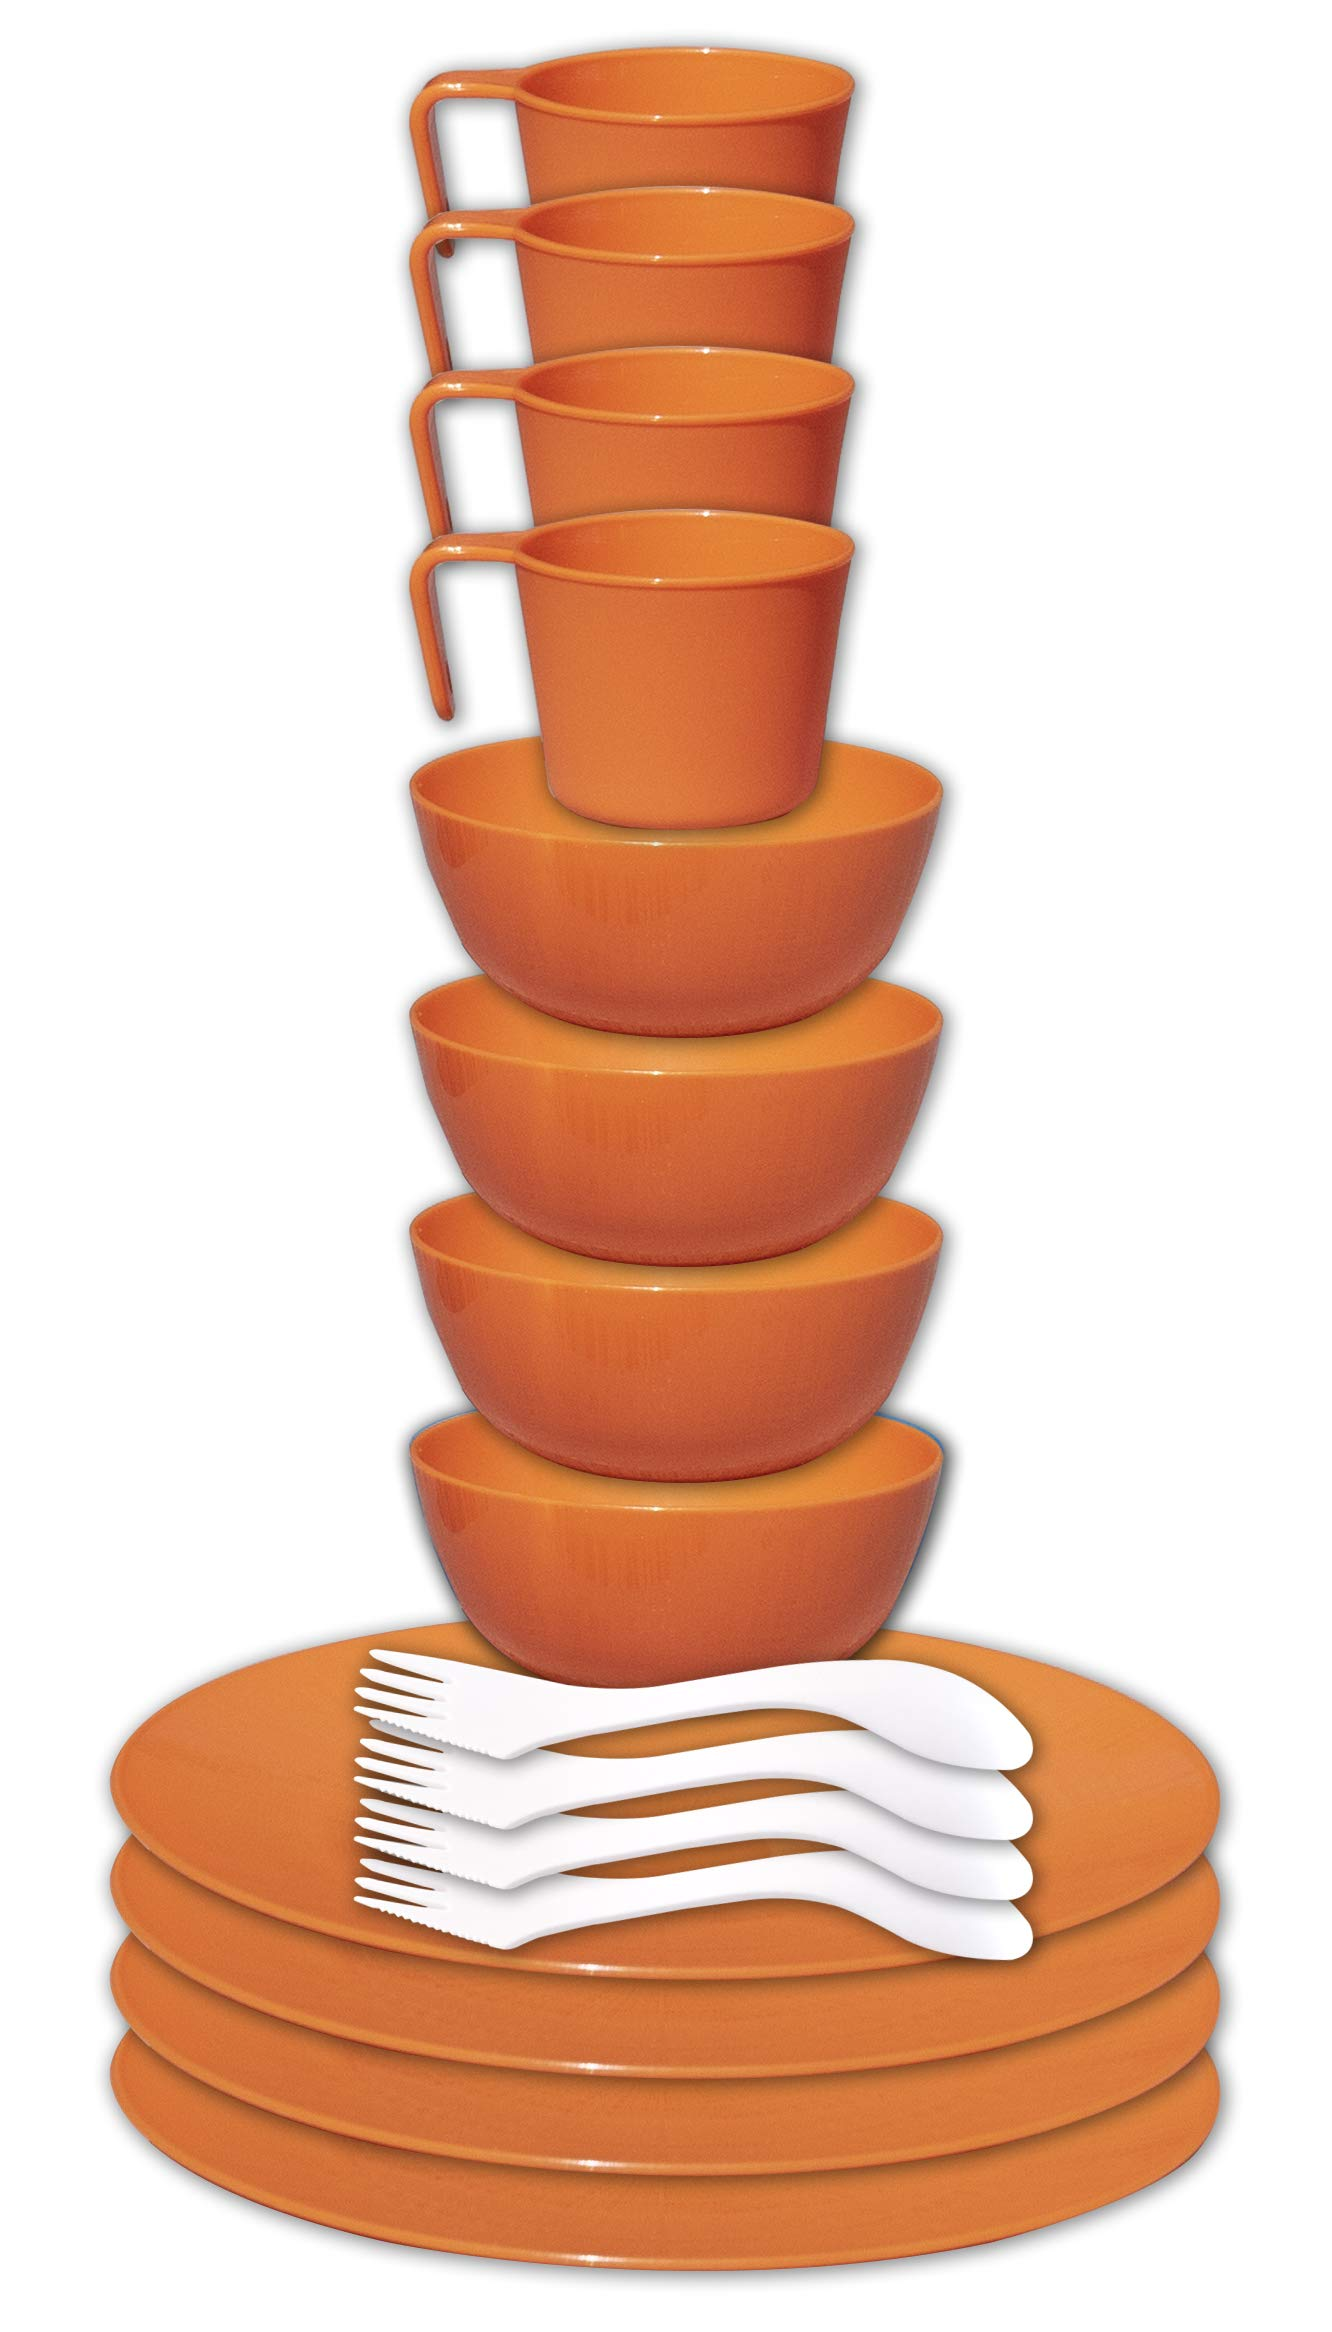 gear4U Camping Tableware Sets - Outdoor Dishes with Mesh Carry Bag - BPA Free - Plate, Bowl, Cup and Utensil for Hiking, Camping, Backpacking, Travel and Outdoor Survival - Orange 4 Person Set by gear4U